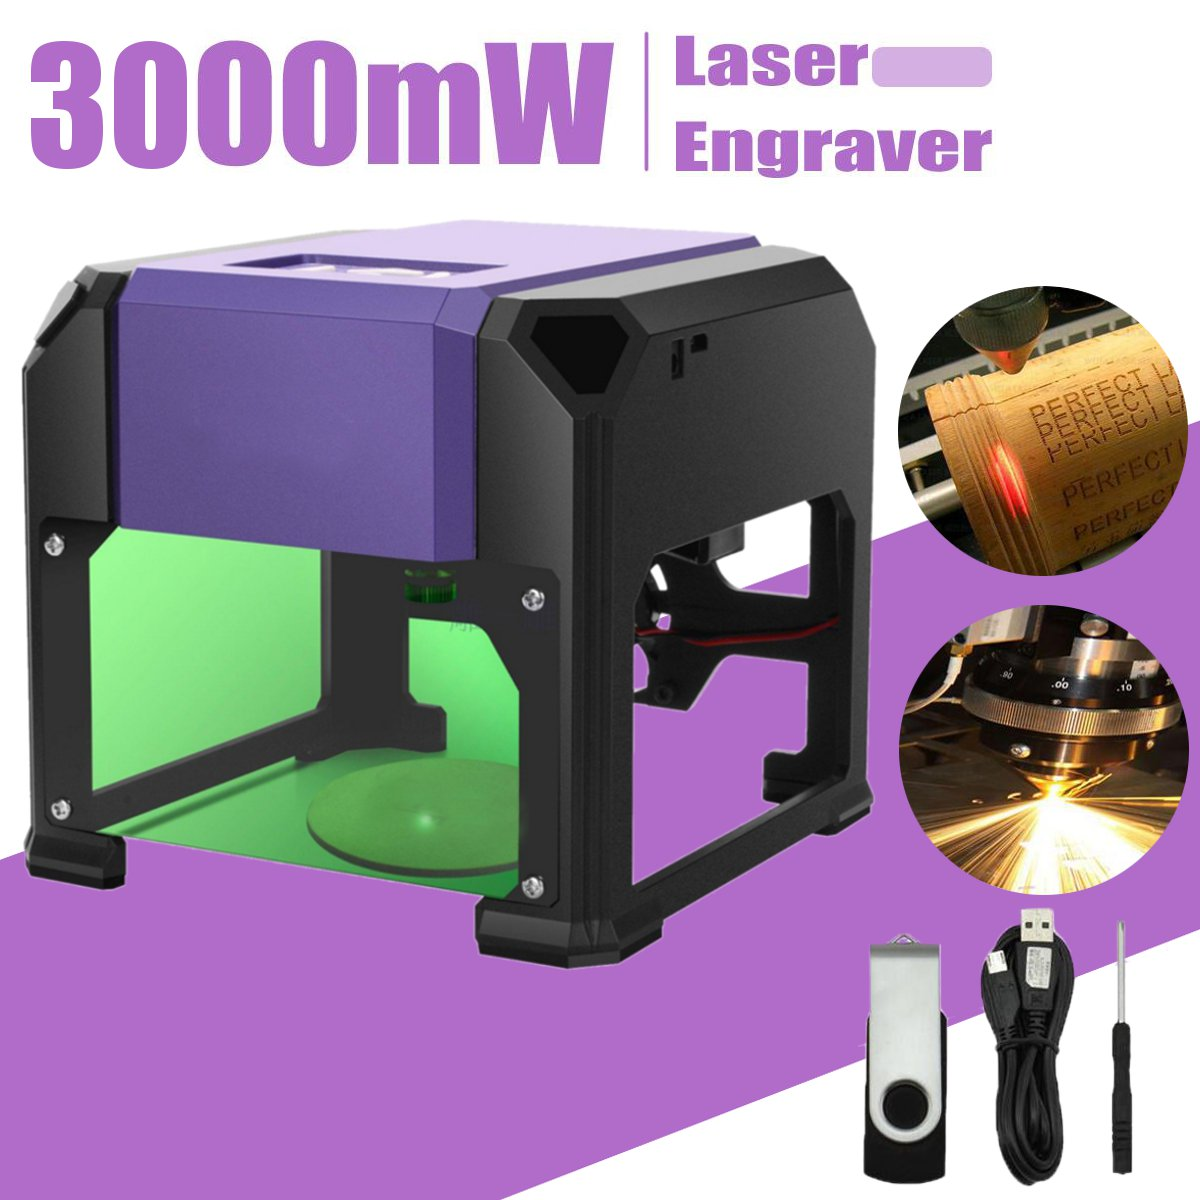 все цены на 3000mW USB Desktop Laser Engraver Machine 80x80mm Engraving Range DIY Logo Mark Printer Cutter CNC Laser Carving Machine онлайн